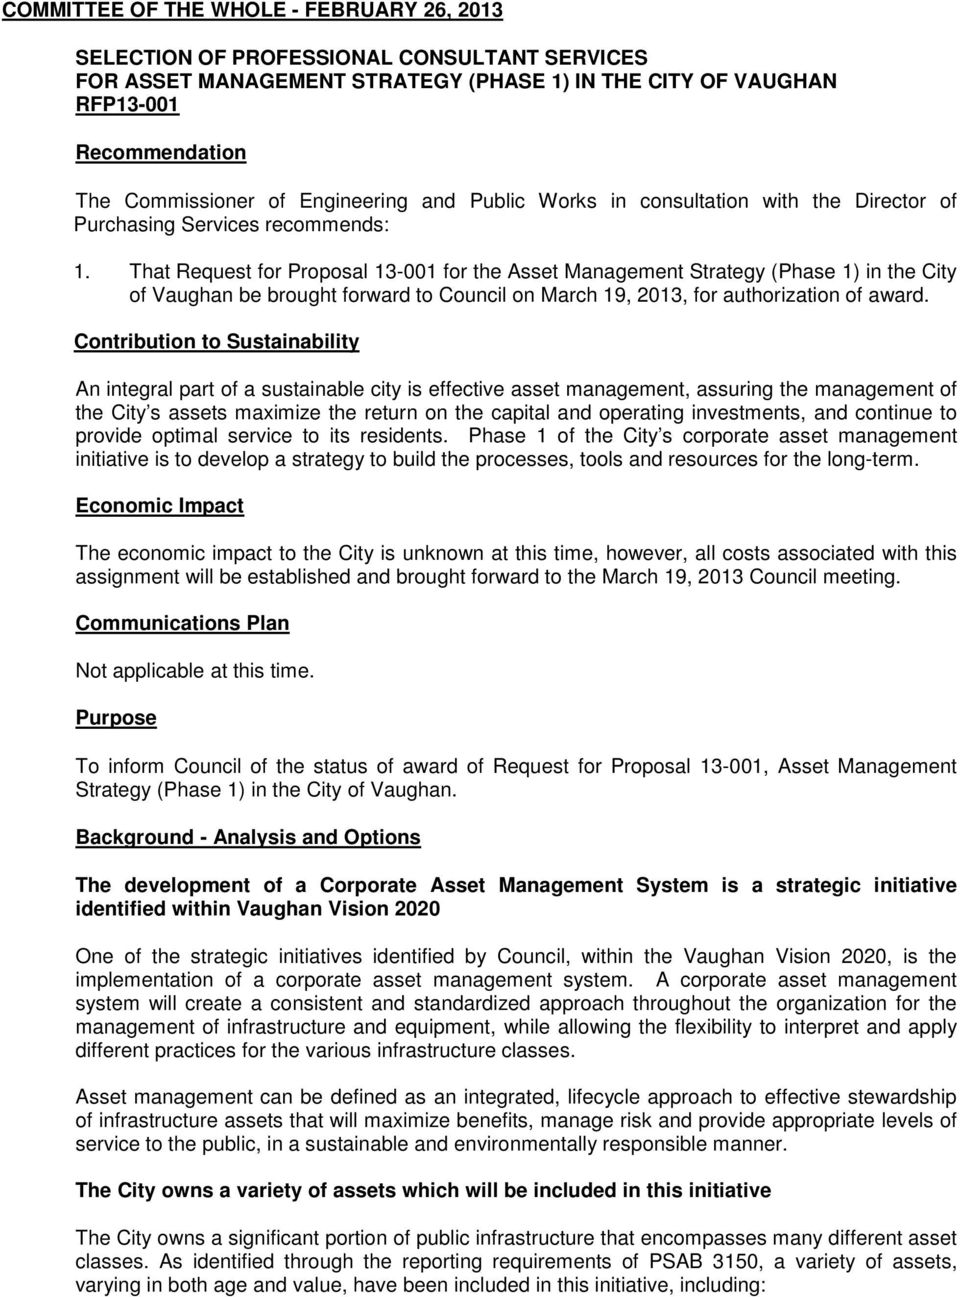 That Request for Proposal 13-001 for the Asset Management Strategy (Phase 1) in the City of Vaughan be brought forward to Council on March 19, 2013, for authorization of award.